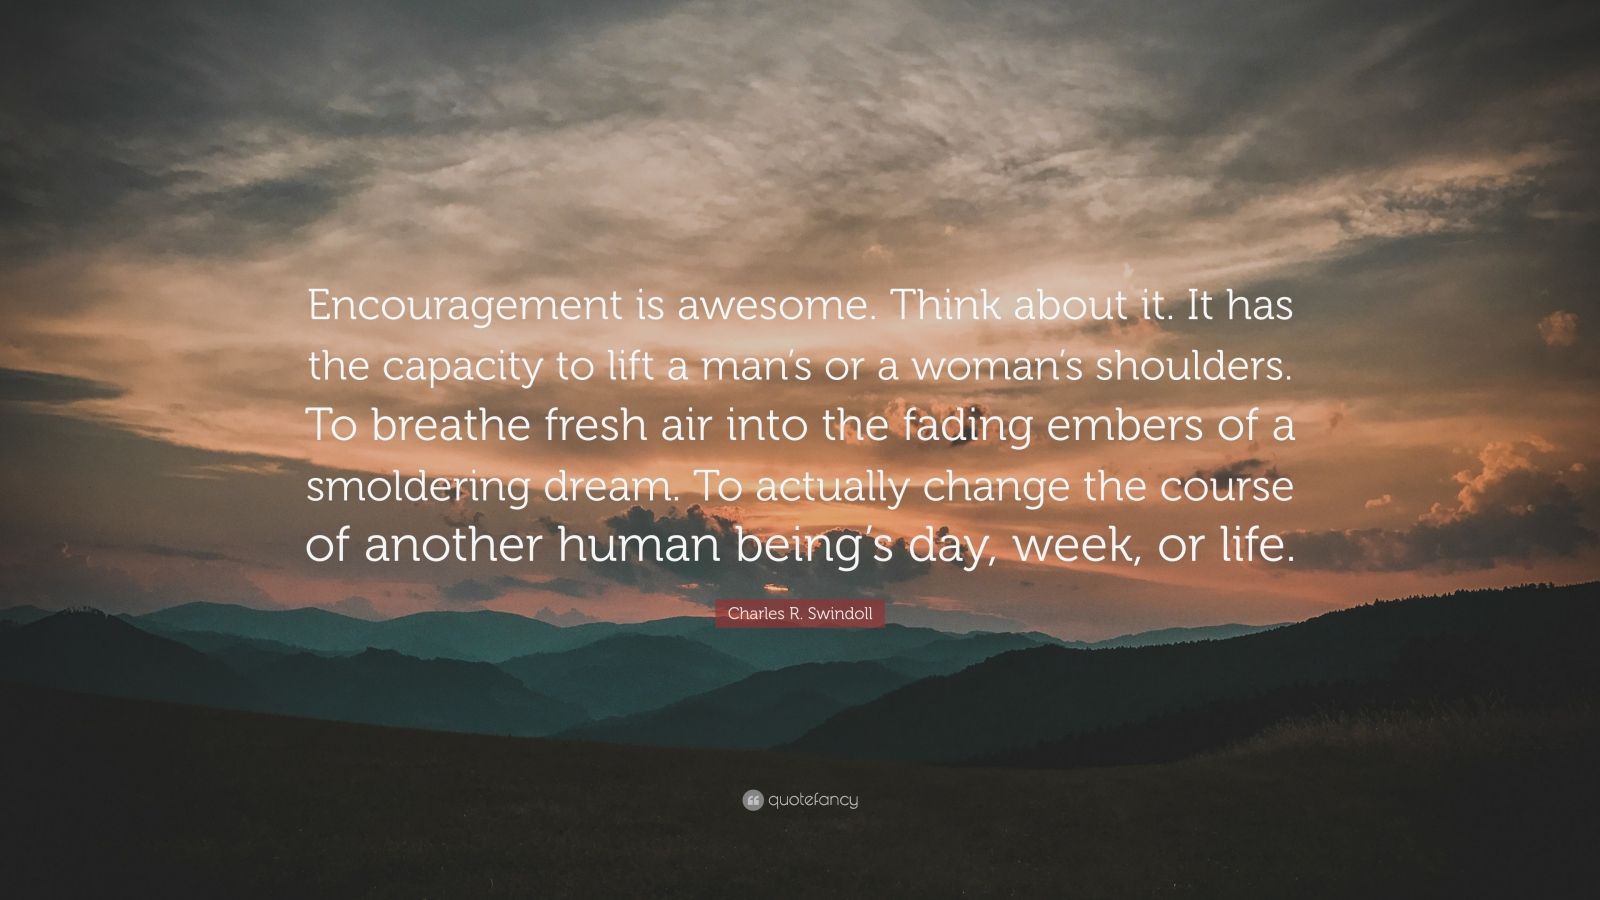 "Charles R. Swindoll Quote: ""Encouragement is awesome. Think about it. It has the capacity to lift a man's or a woman's shoulders. To breathe fresh air into the fading embers of a smoldering dream. To actually change the course of another human being's day, week, or life."""